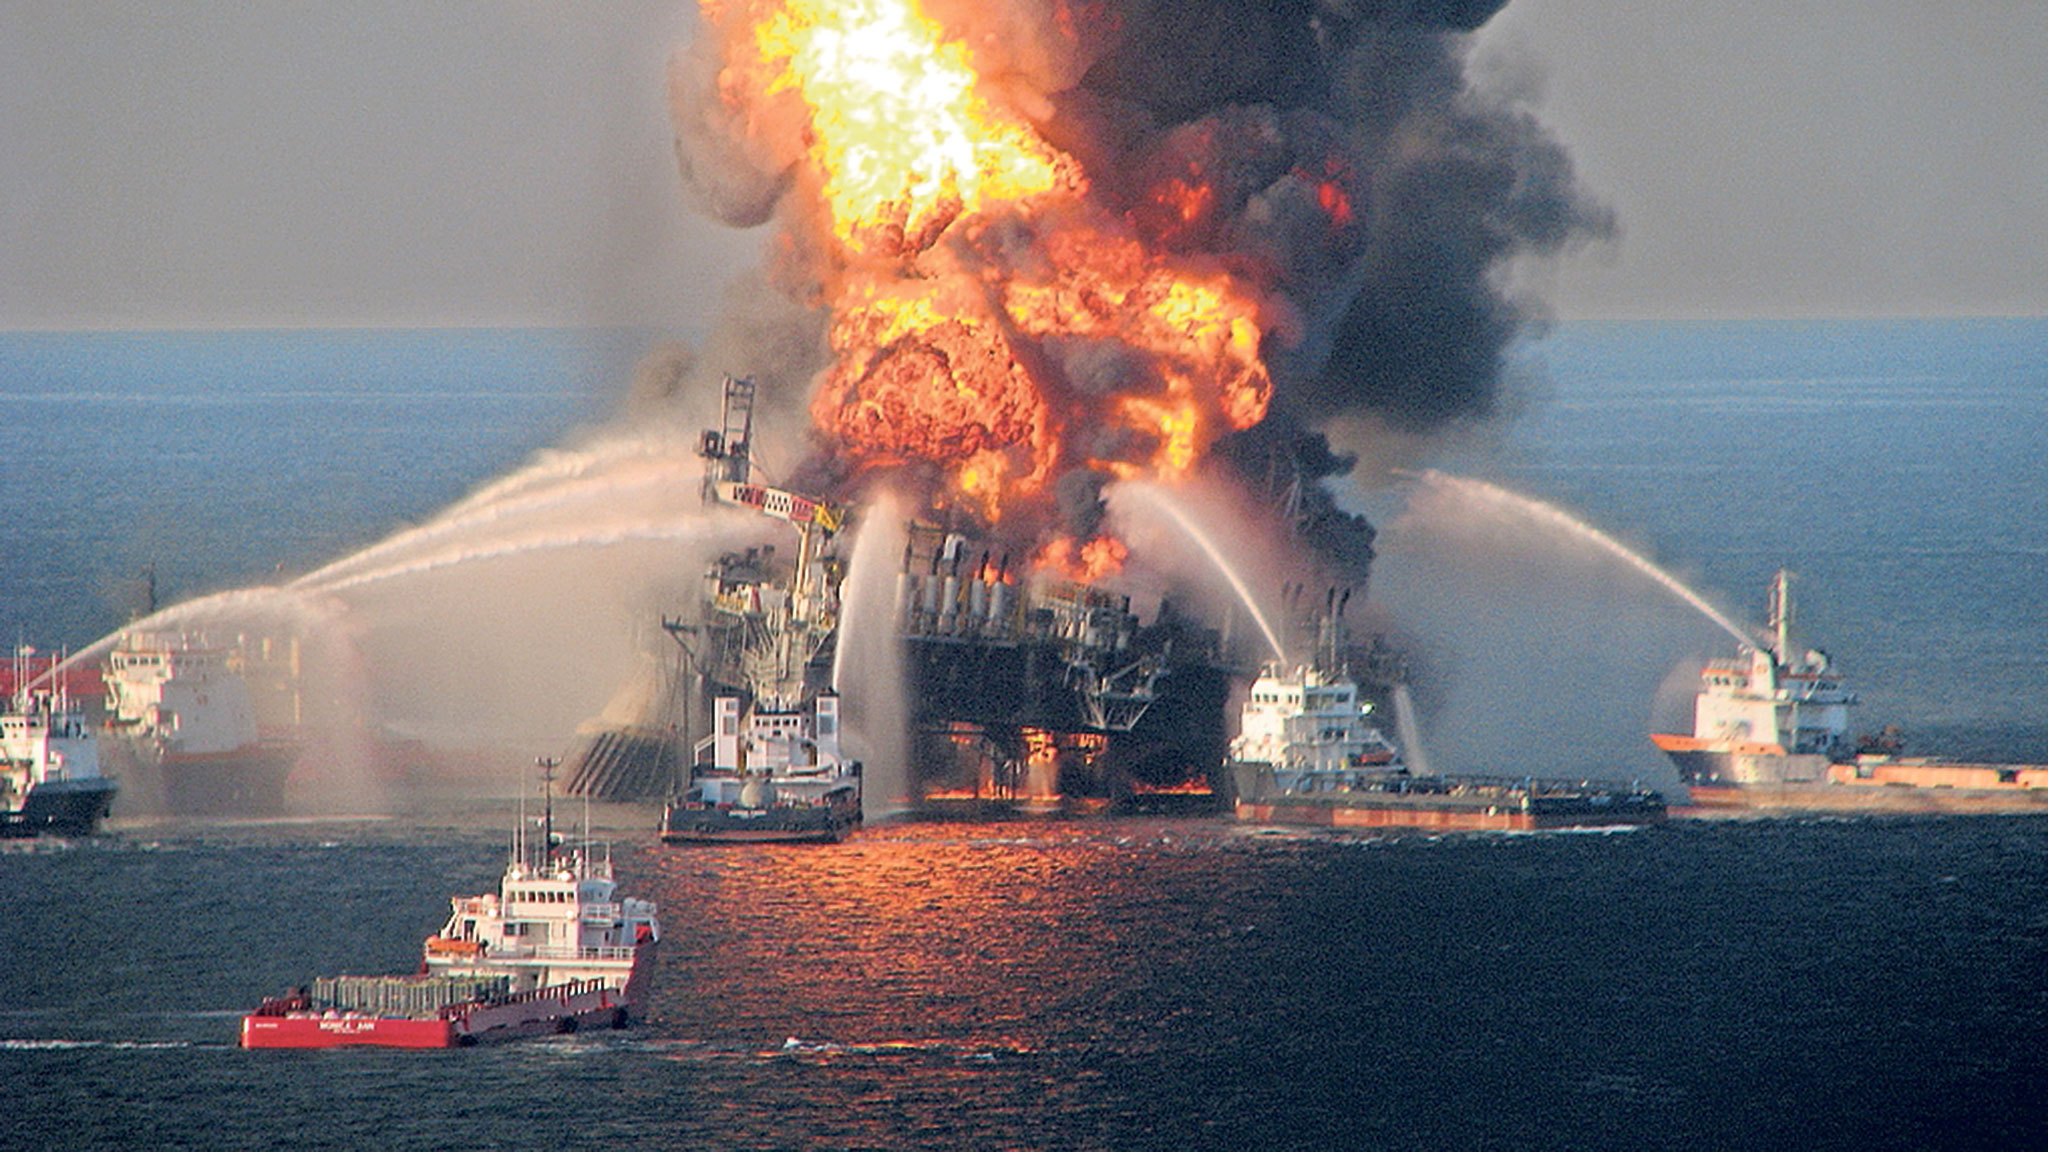 BP Settles With Transocean And Halliburton Over Gulf Spill